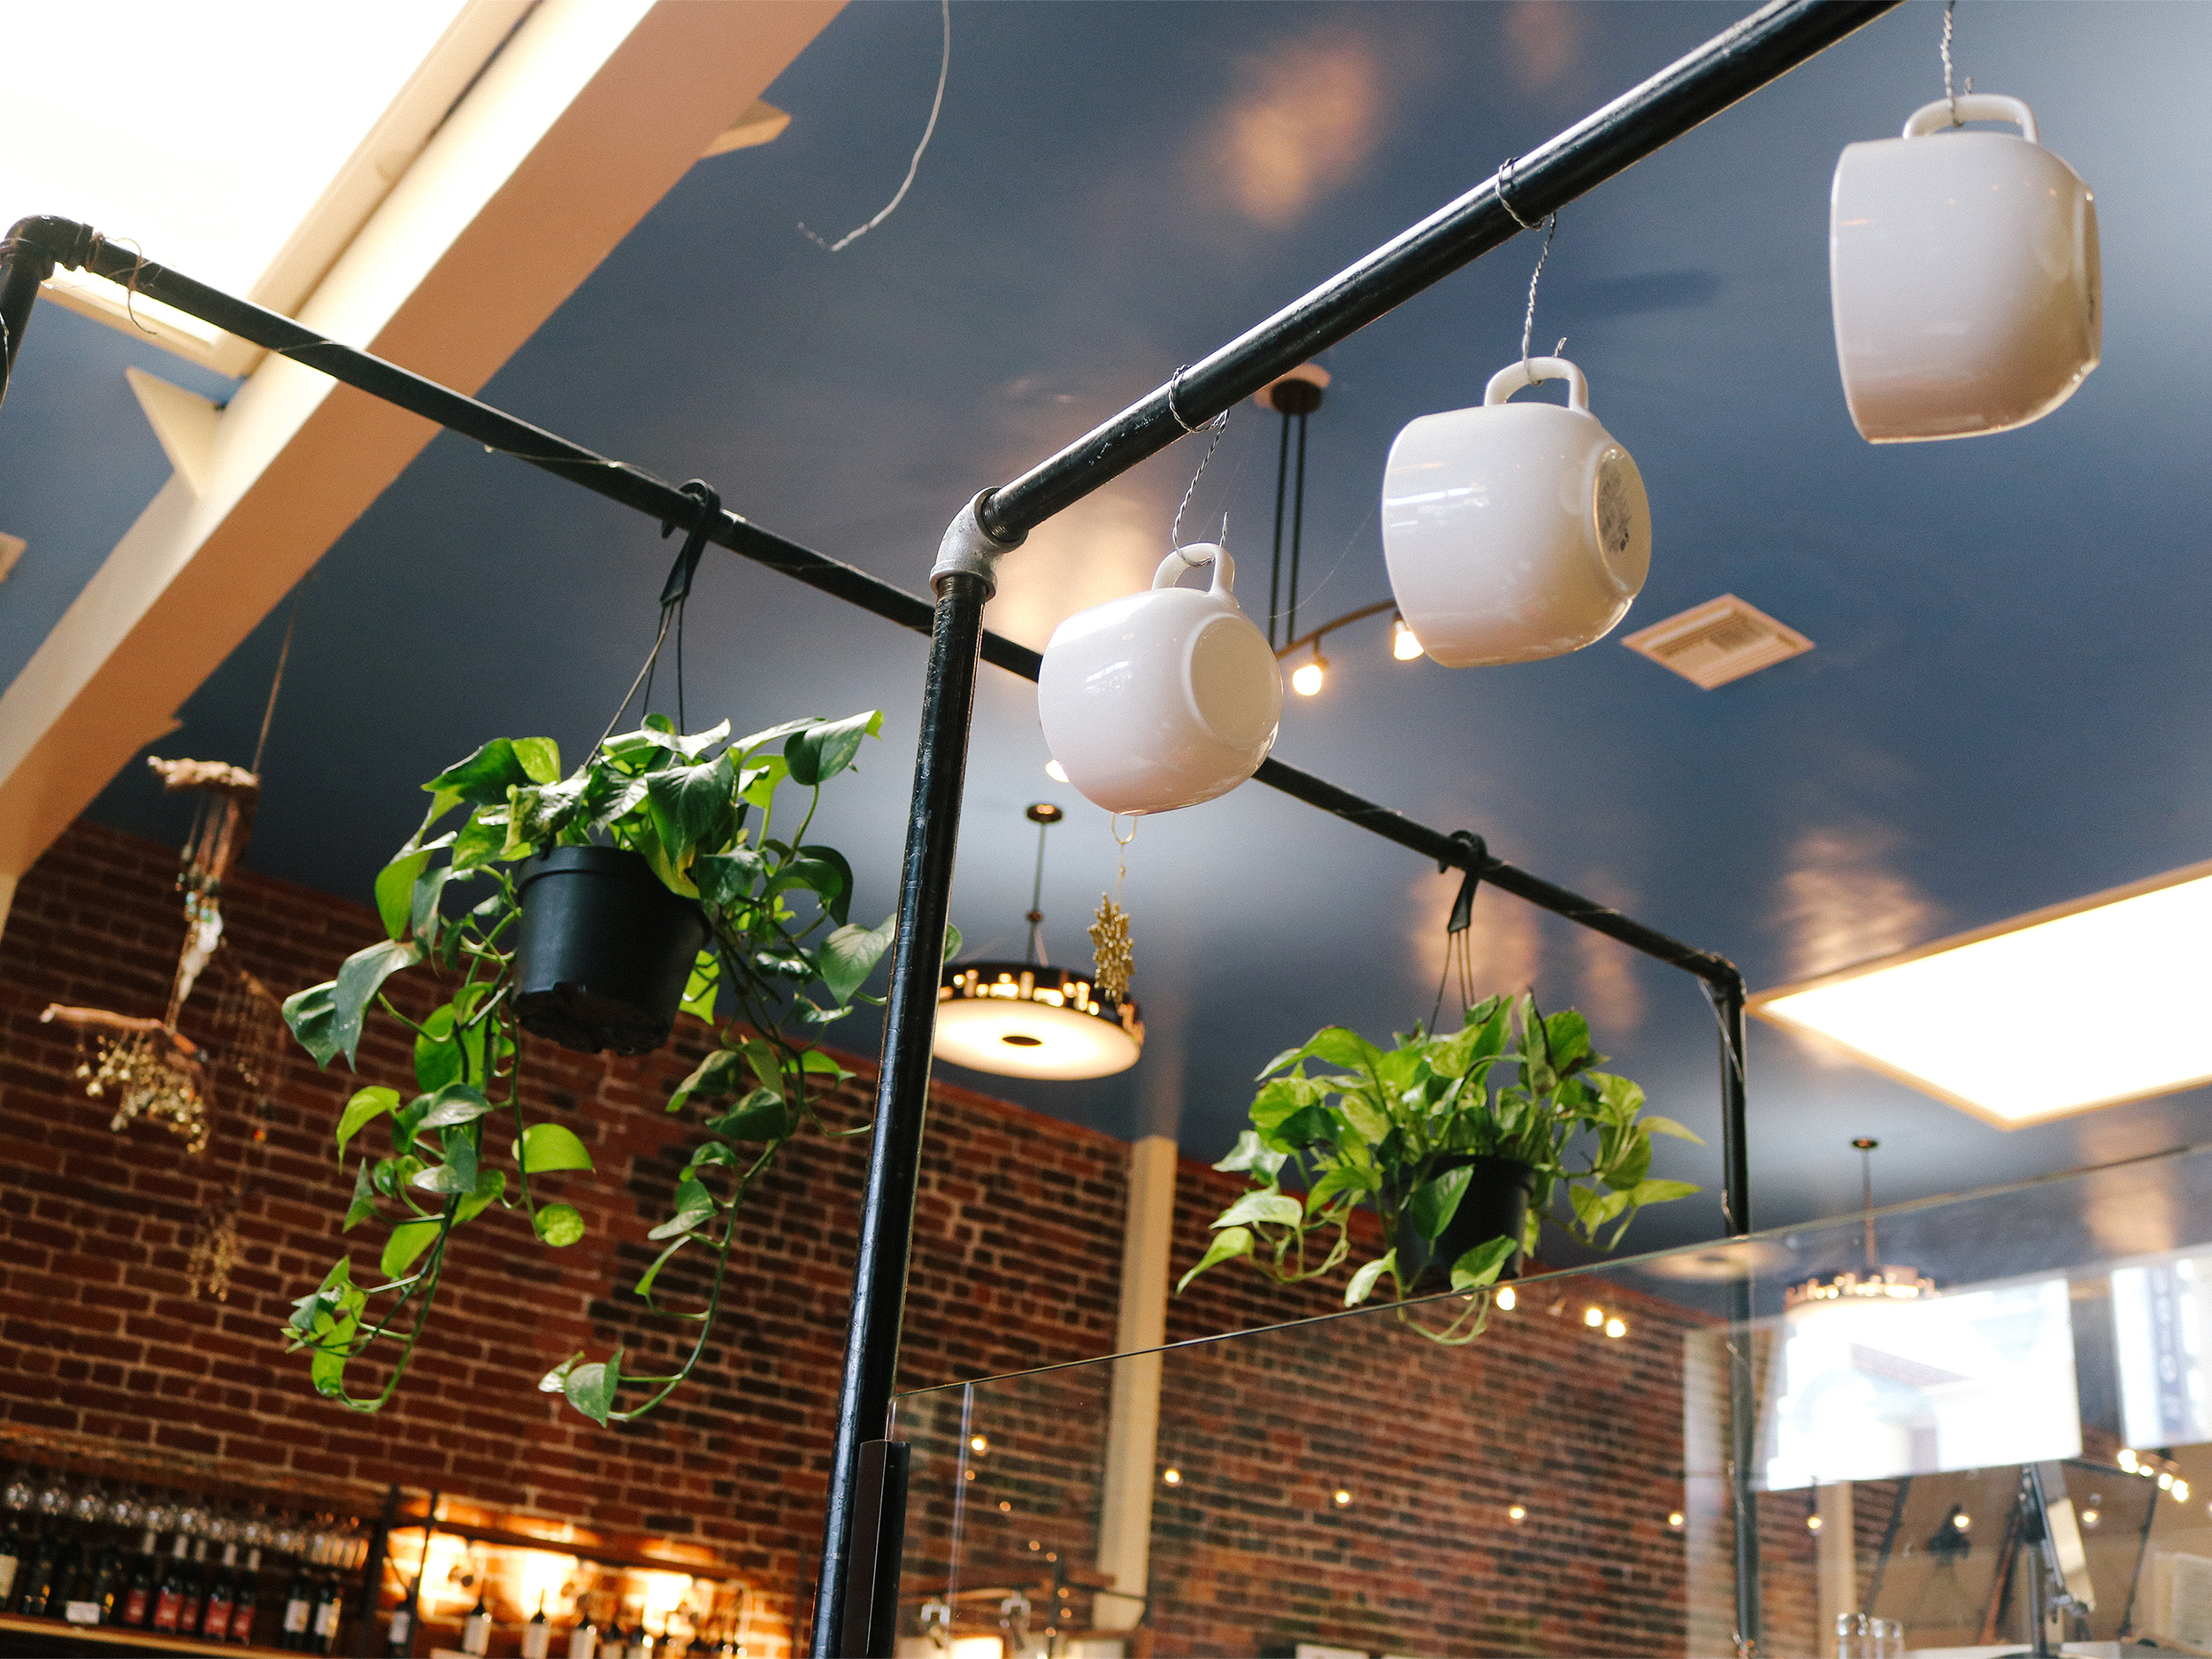 coffee mugs and plants hanging out